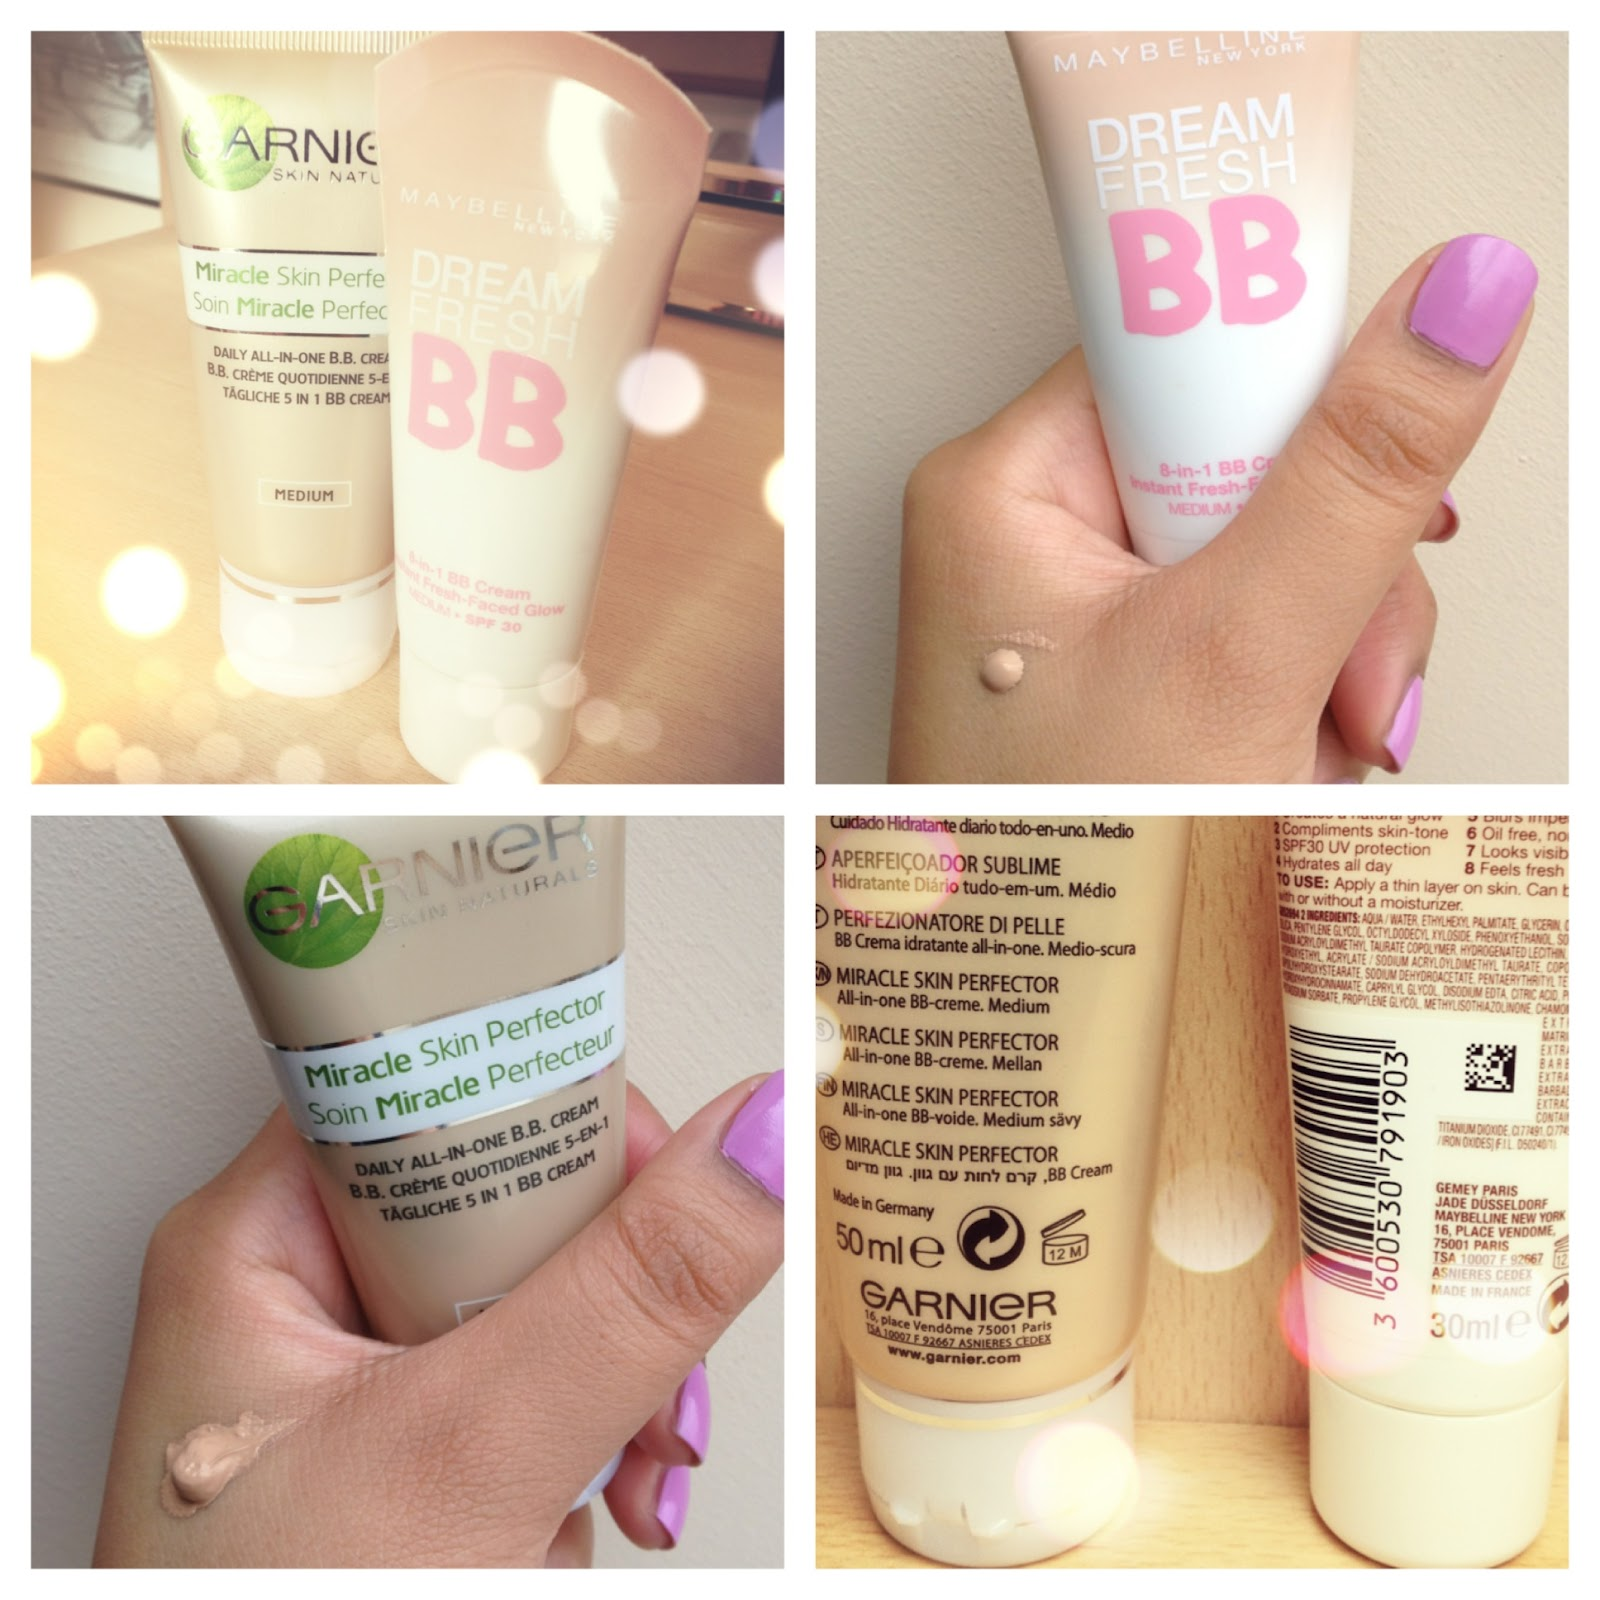 Review | Battle of the BB creams feat. Garnier & Maybelline